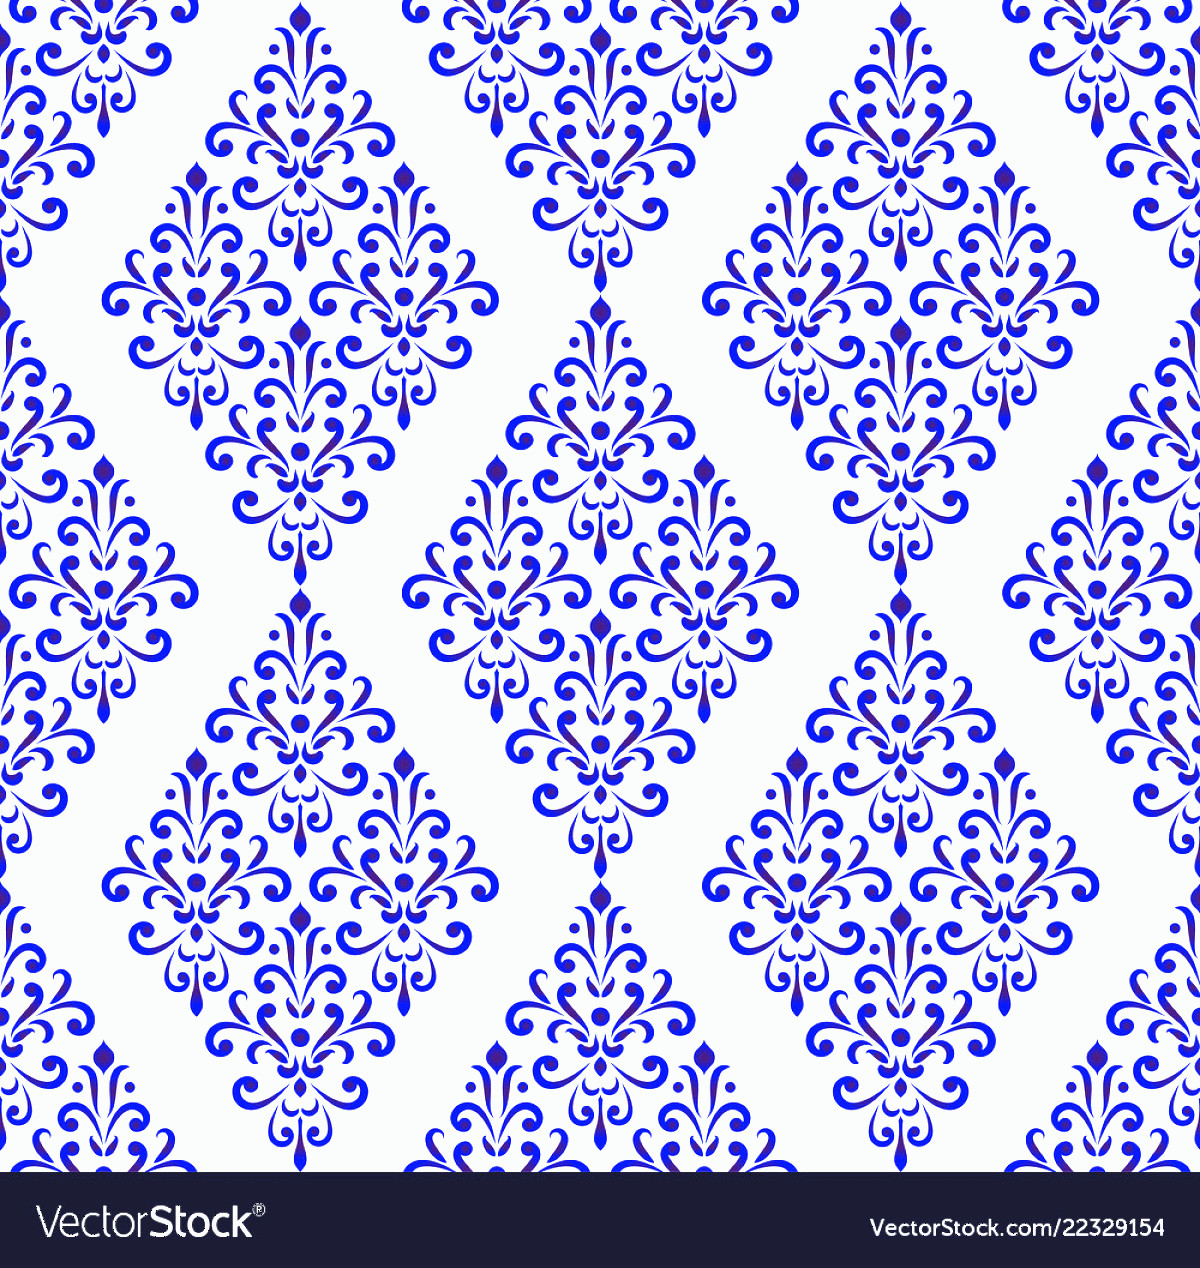 Blue And White Damask Vectors: Blue And White Pattern Damask Style Vector